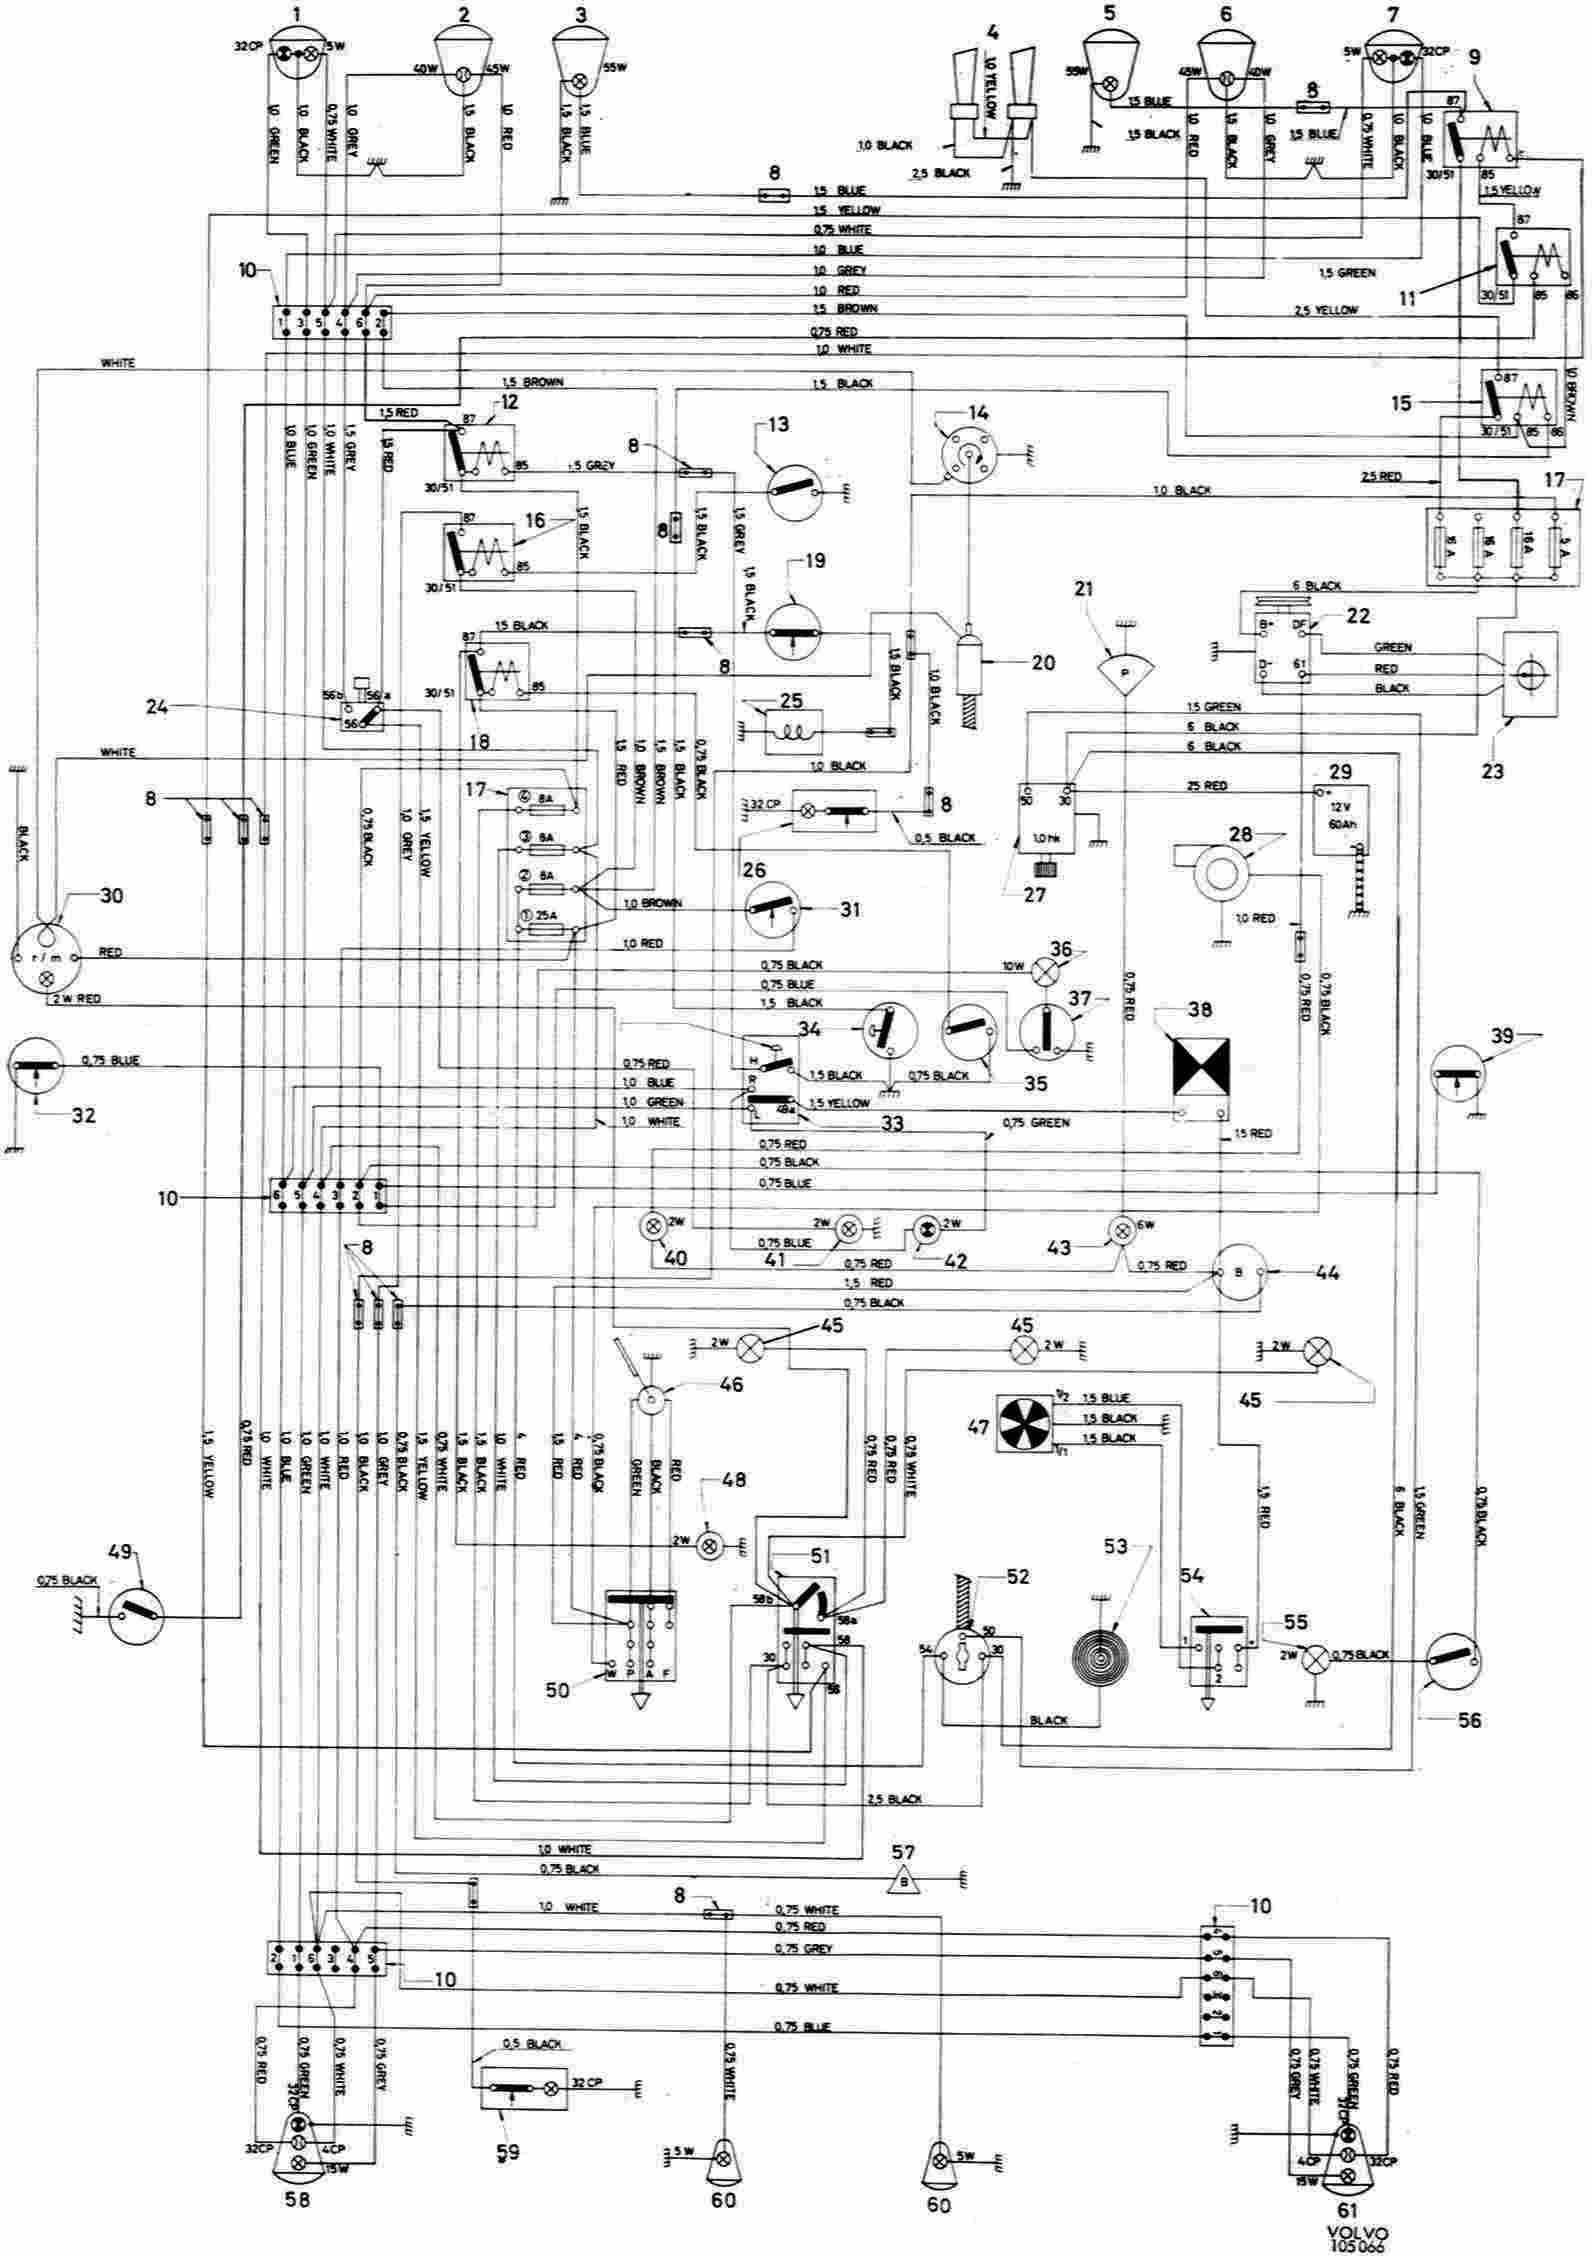 medium resolution of volvo wiring diagram v50 wiring diagram centre volvo v50 engine diagram